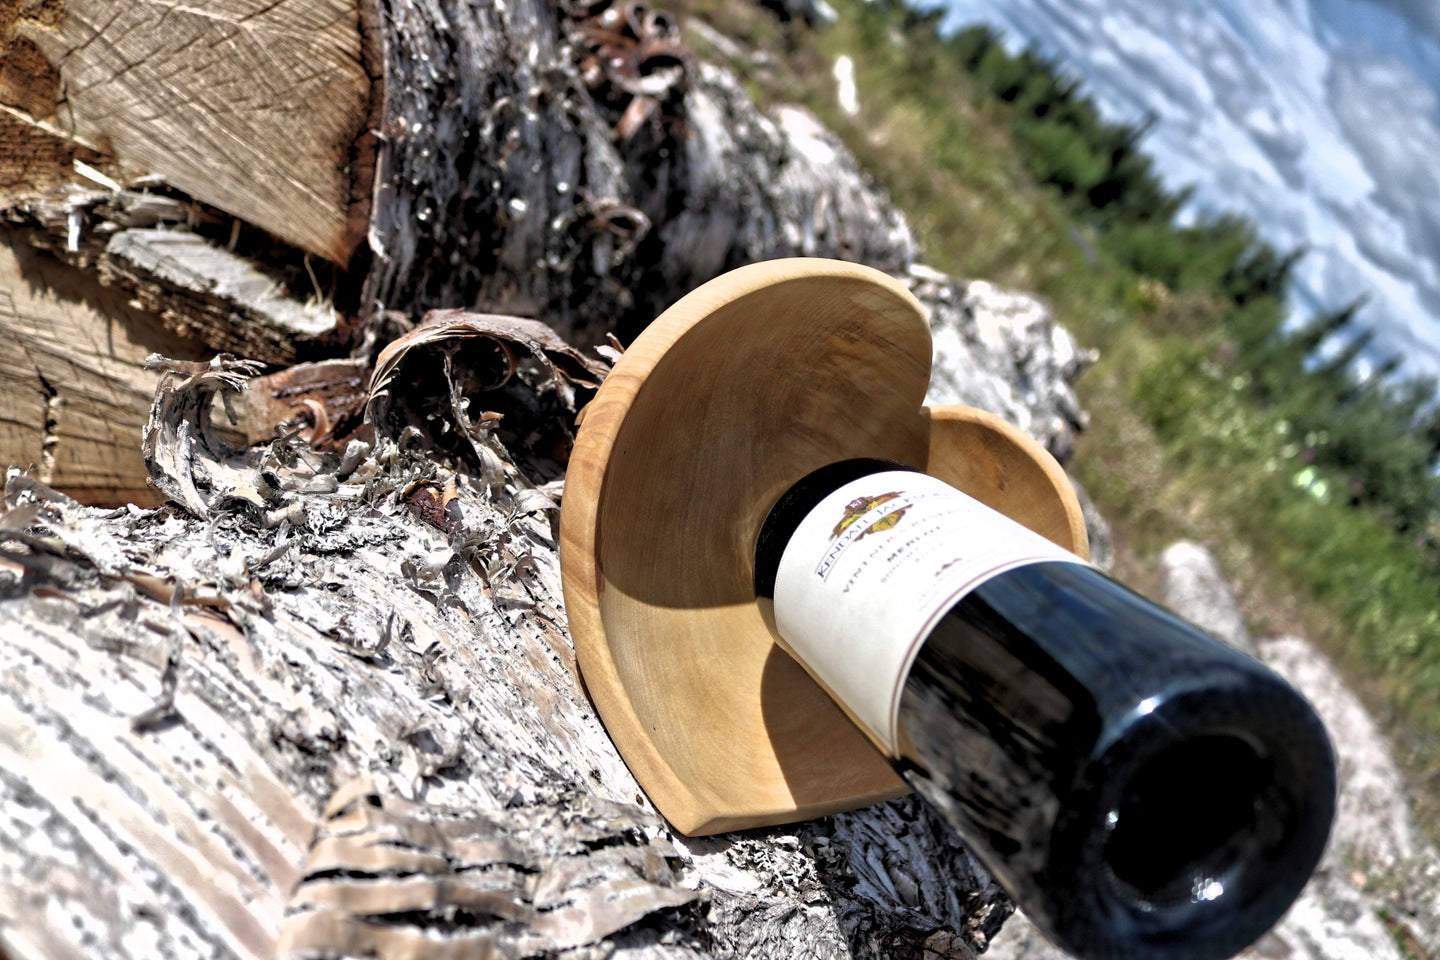 Hand-made Wine Bottle Holder - Heart